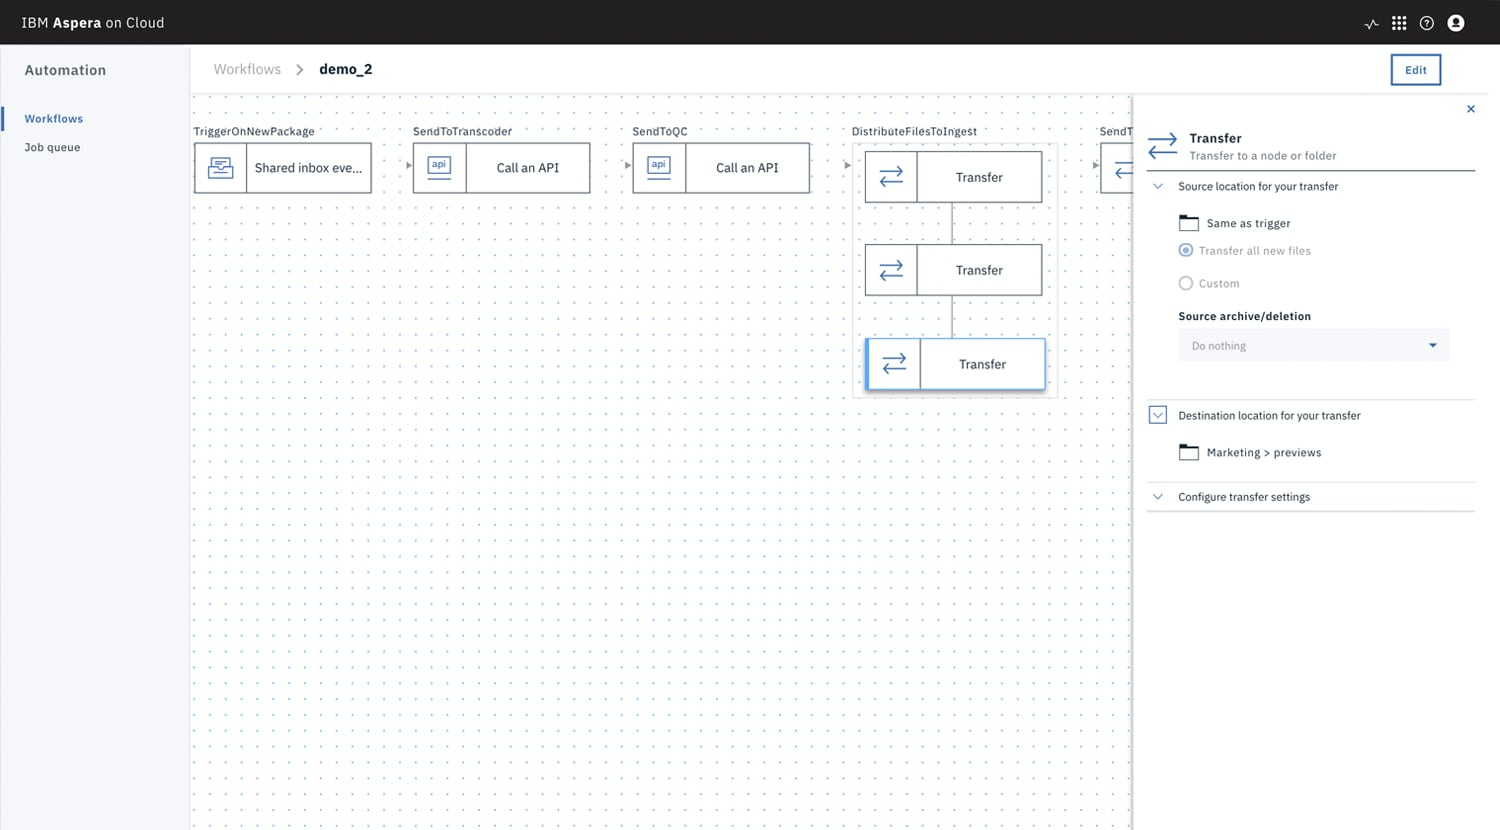 Screenshot showing how to design fully automated file-based workflows with Aspera